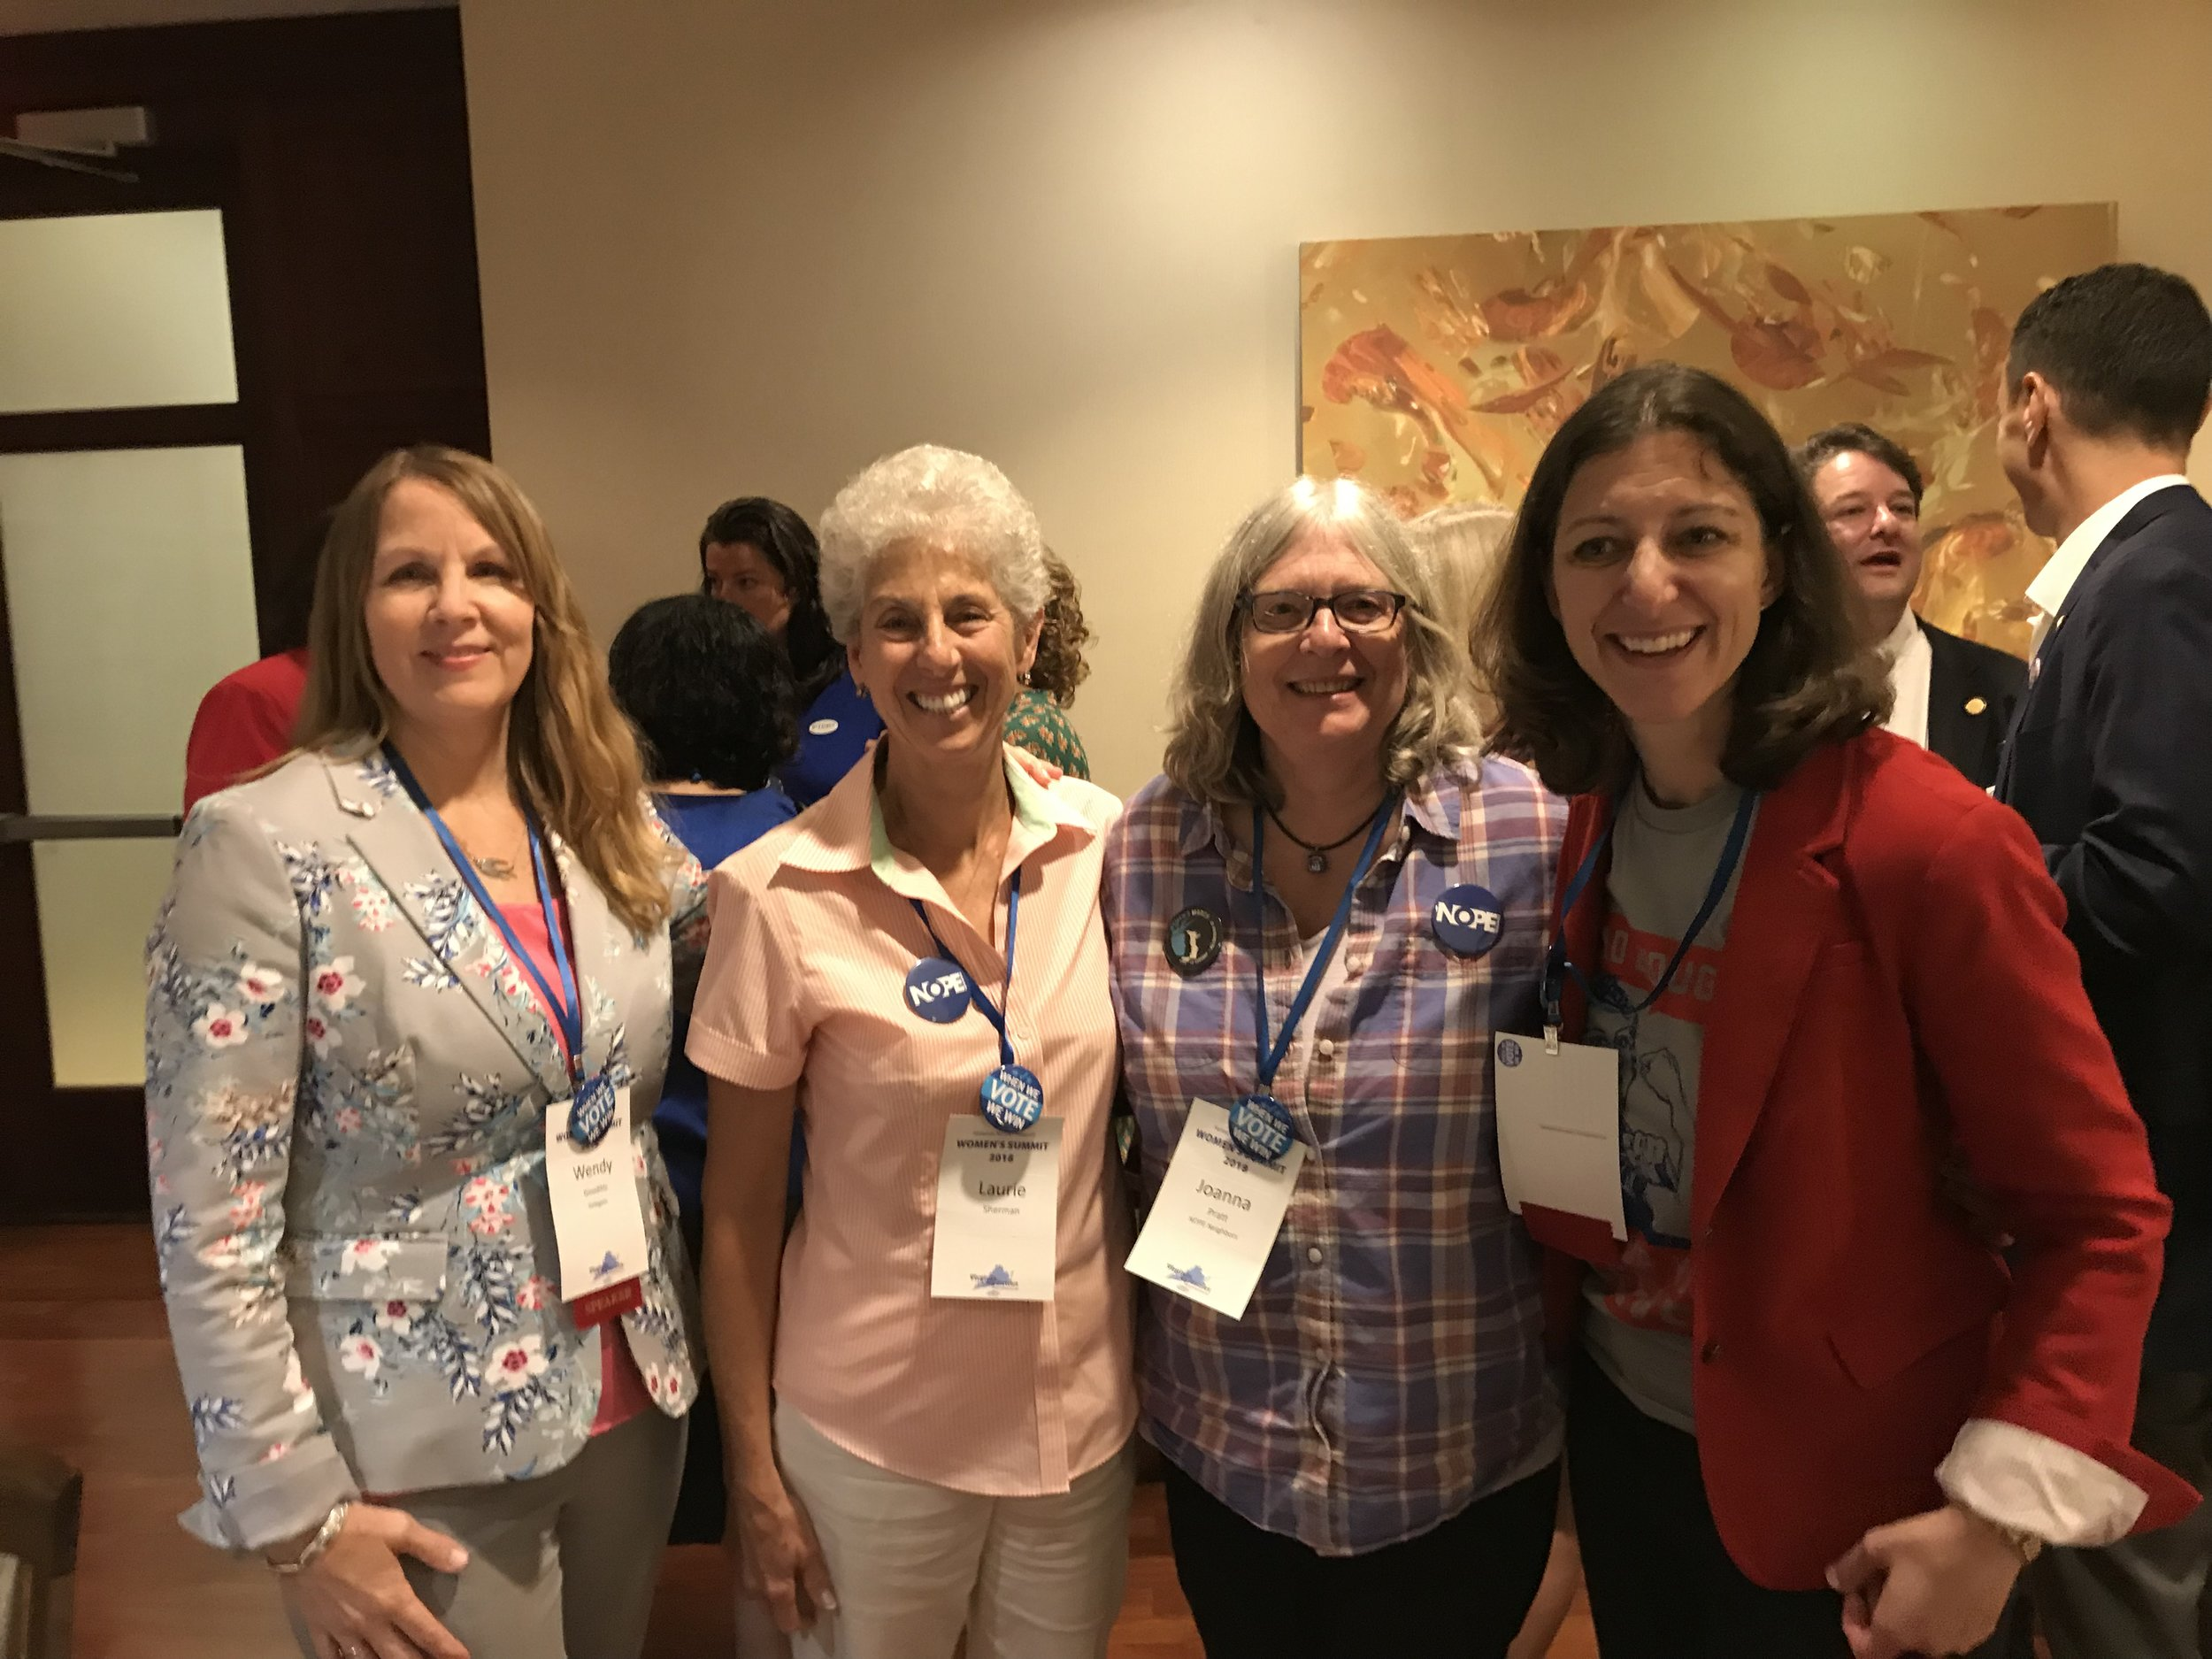 NOPE members at the Virginia Women's Summit with Wendy Gooditis (elected to the Virginia House of Delegates, 10th District, 2017) and Elaine Luria (elected to Congress in 2018).